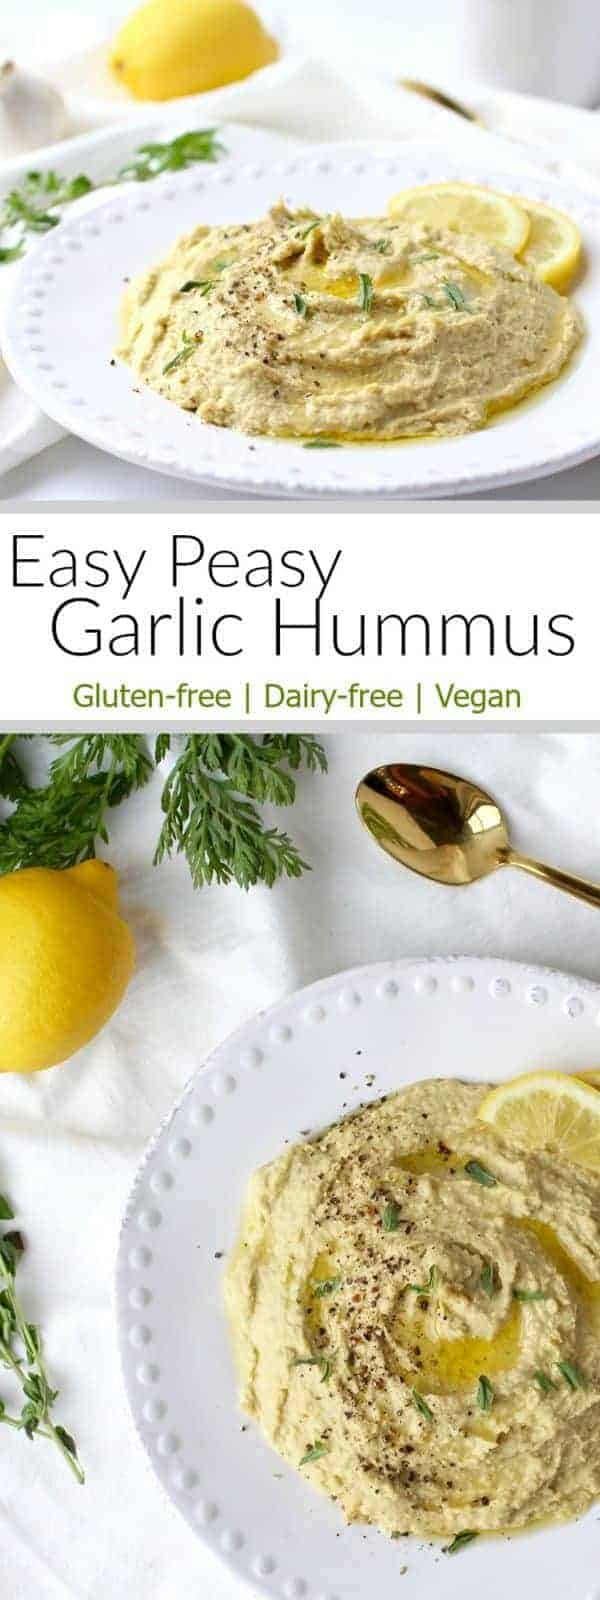 Easy Peasy Garlic Hummus makes for a bomb veggie dip. It can add a boost of flavor to your favorite wrap and it makes for a delicious addition to all kinds of salads - veggie salads, tuna salad, egg salad, chicken salad...you name it! | Vegan | Gluten-free